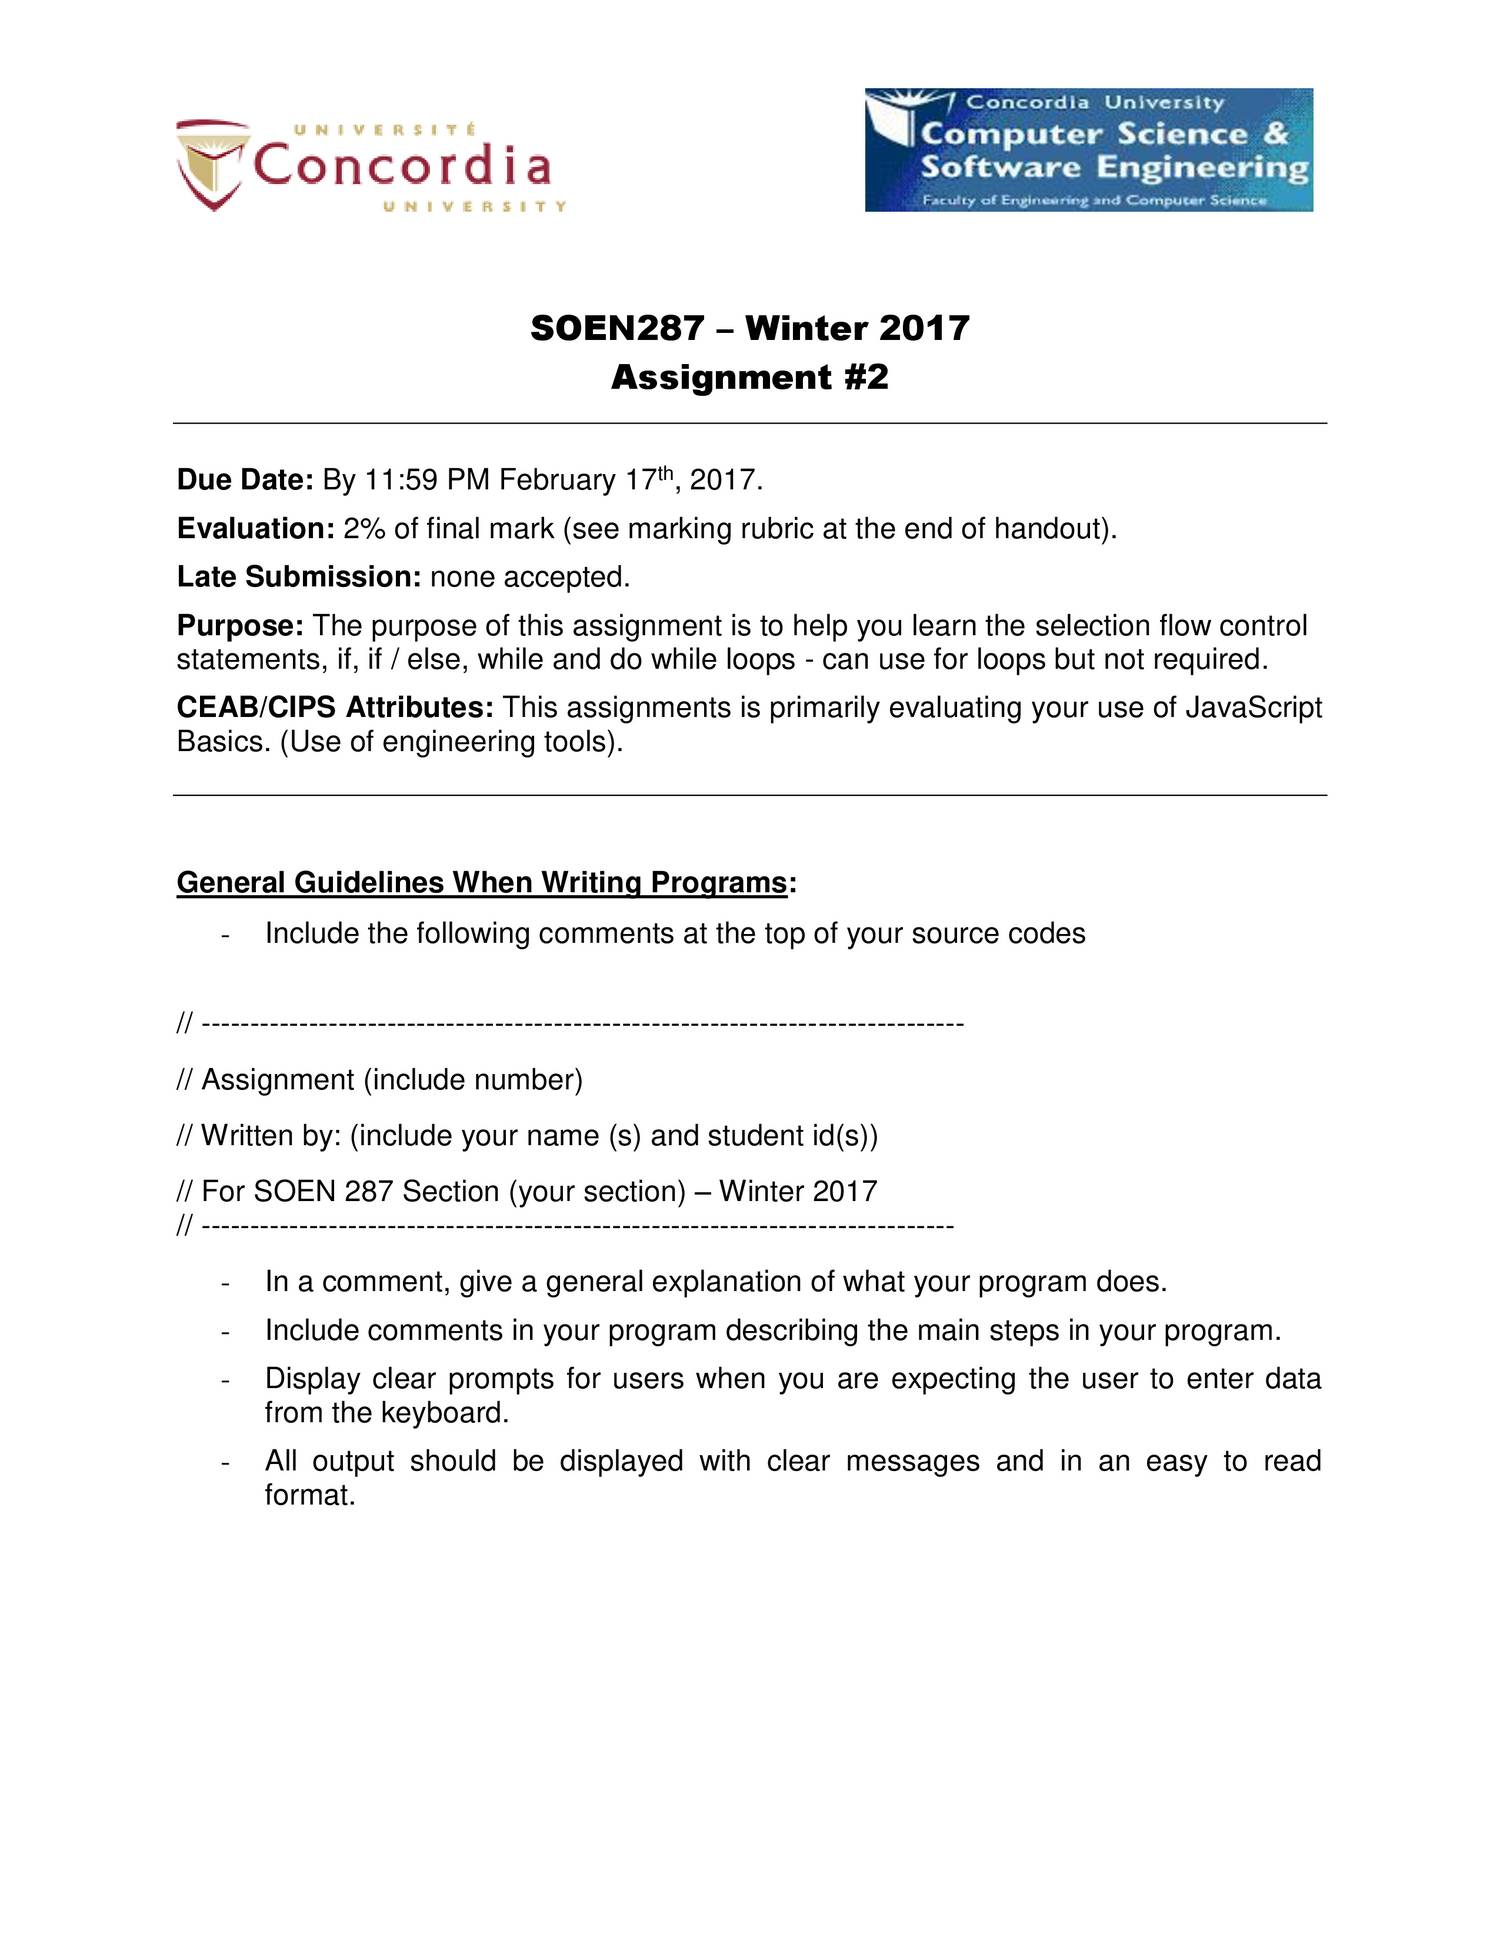 soen winter assignment pdf docdroid